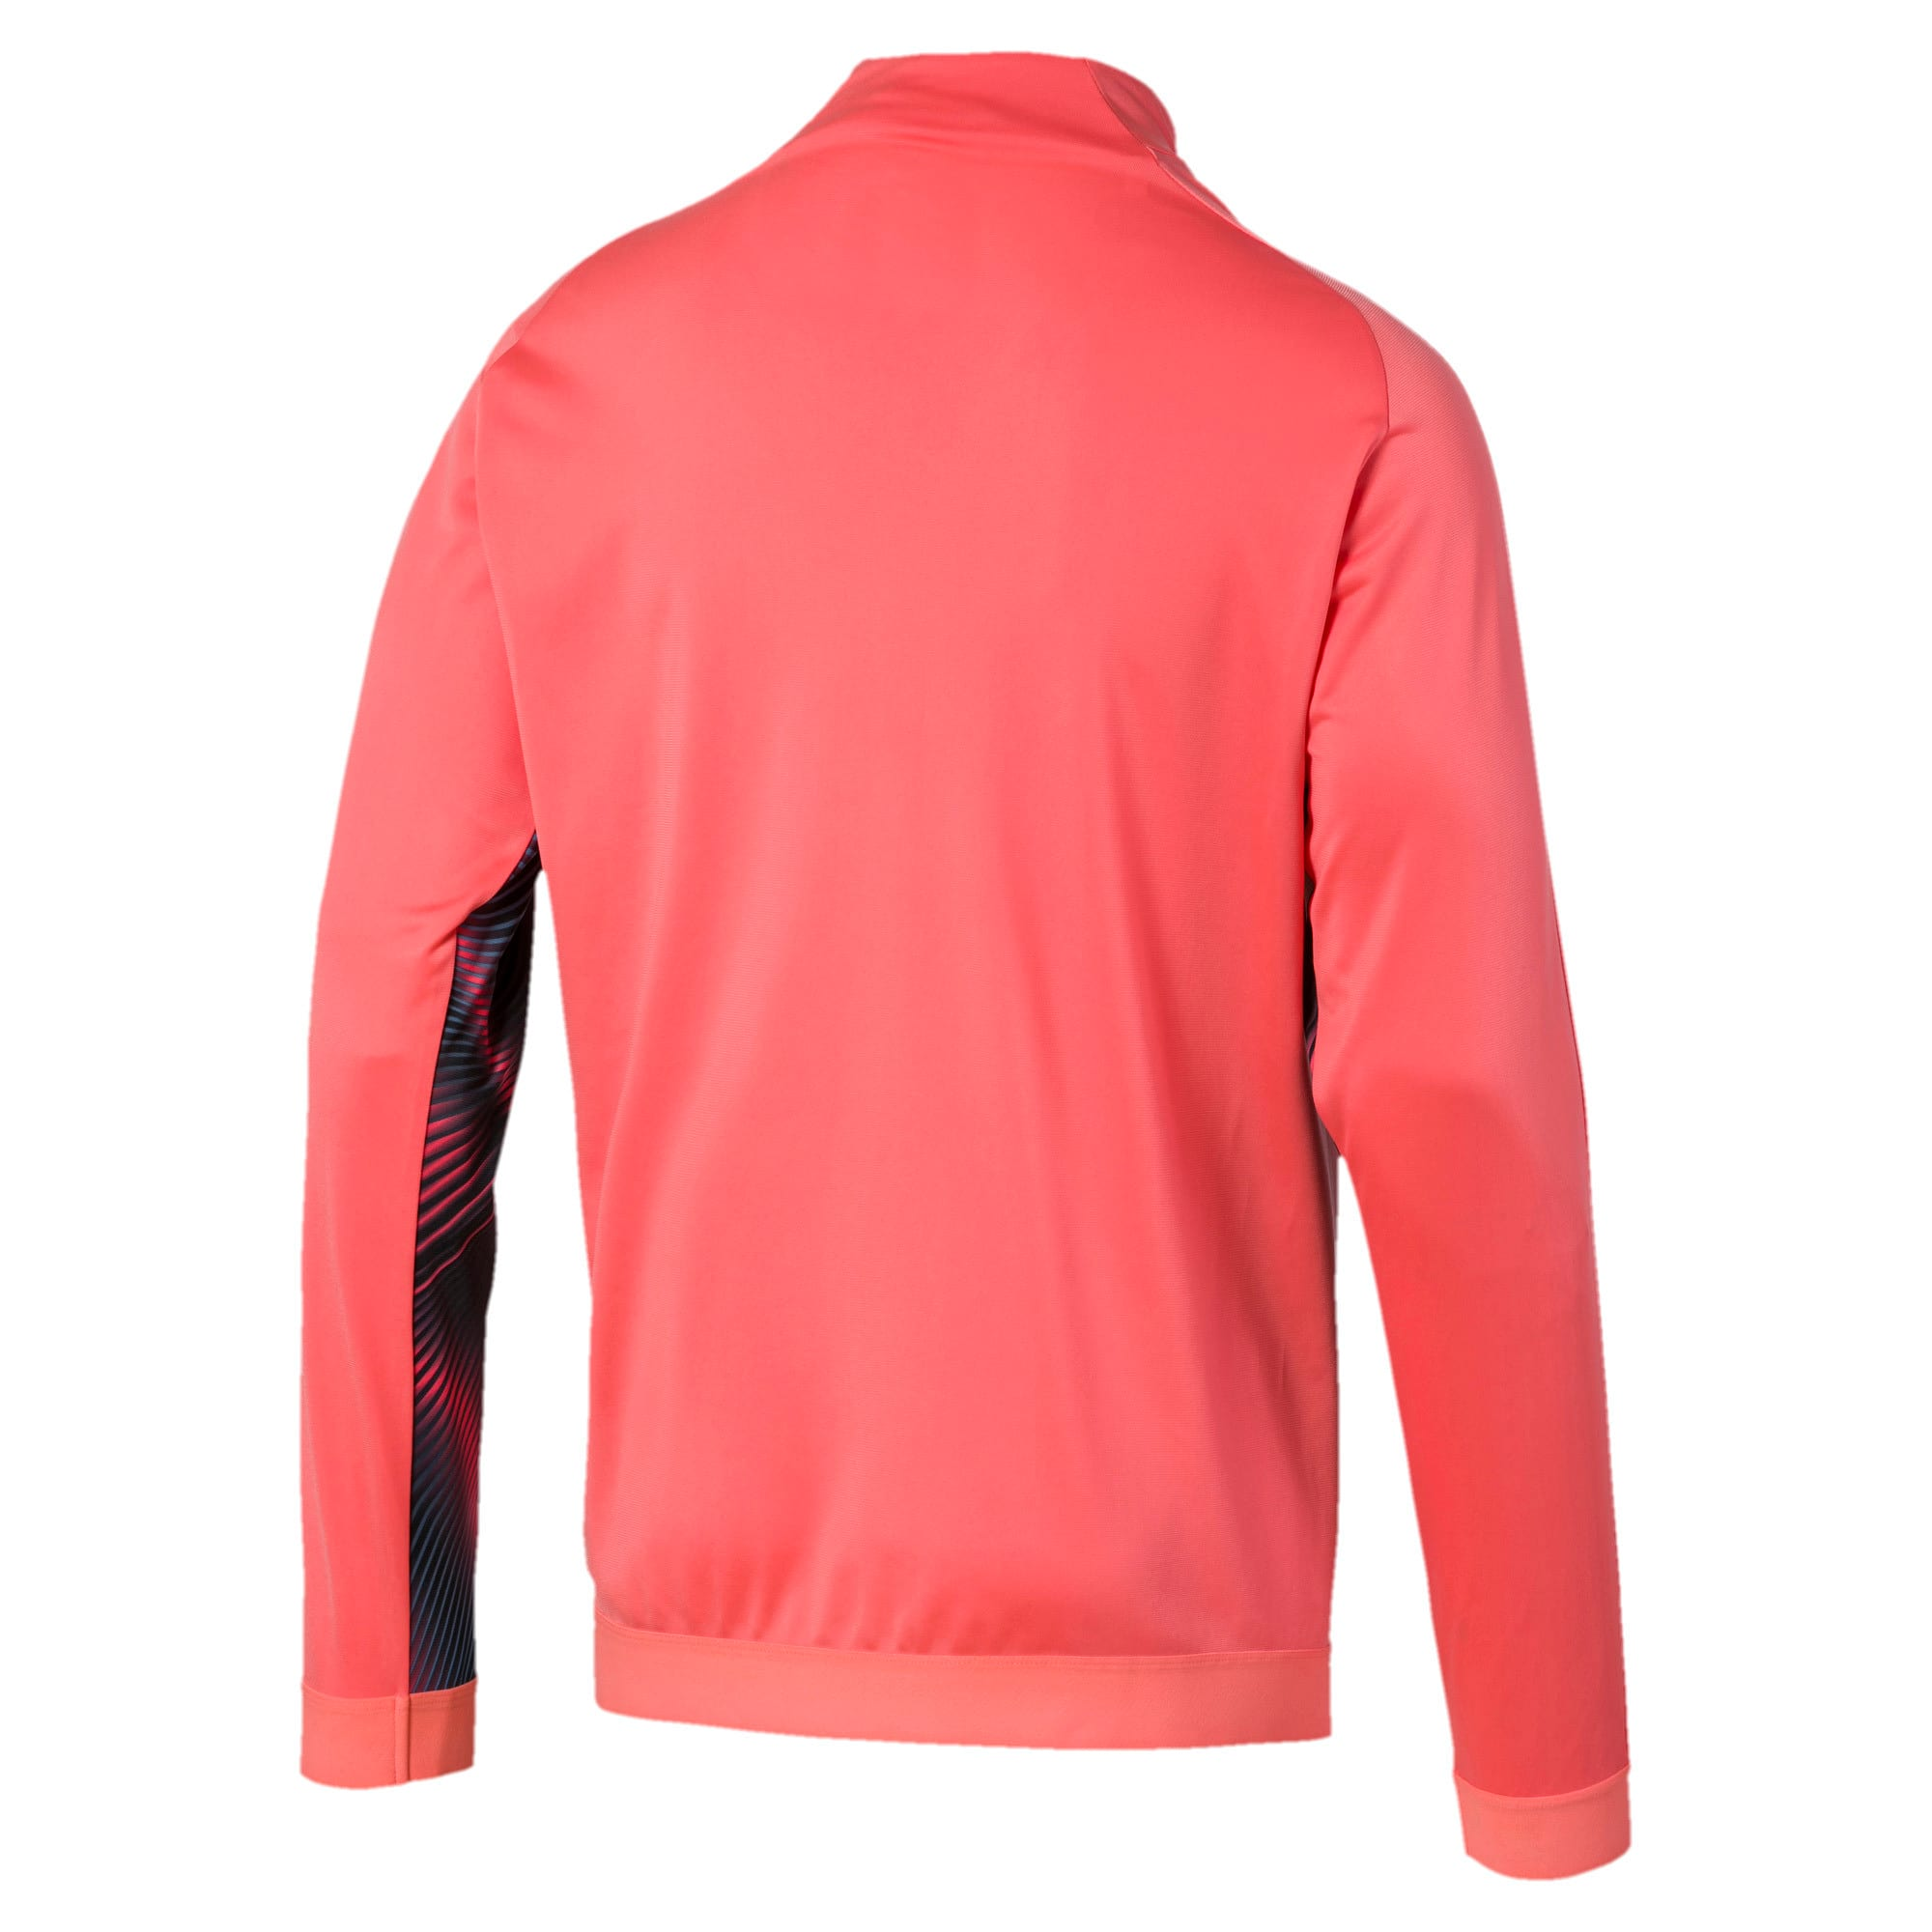 Thumbnail 2 of Man City Stadium League Men's Jacket, Georgia Peach-Puma Black, medium